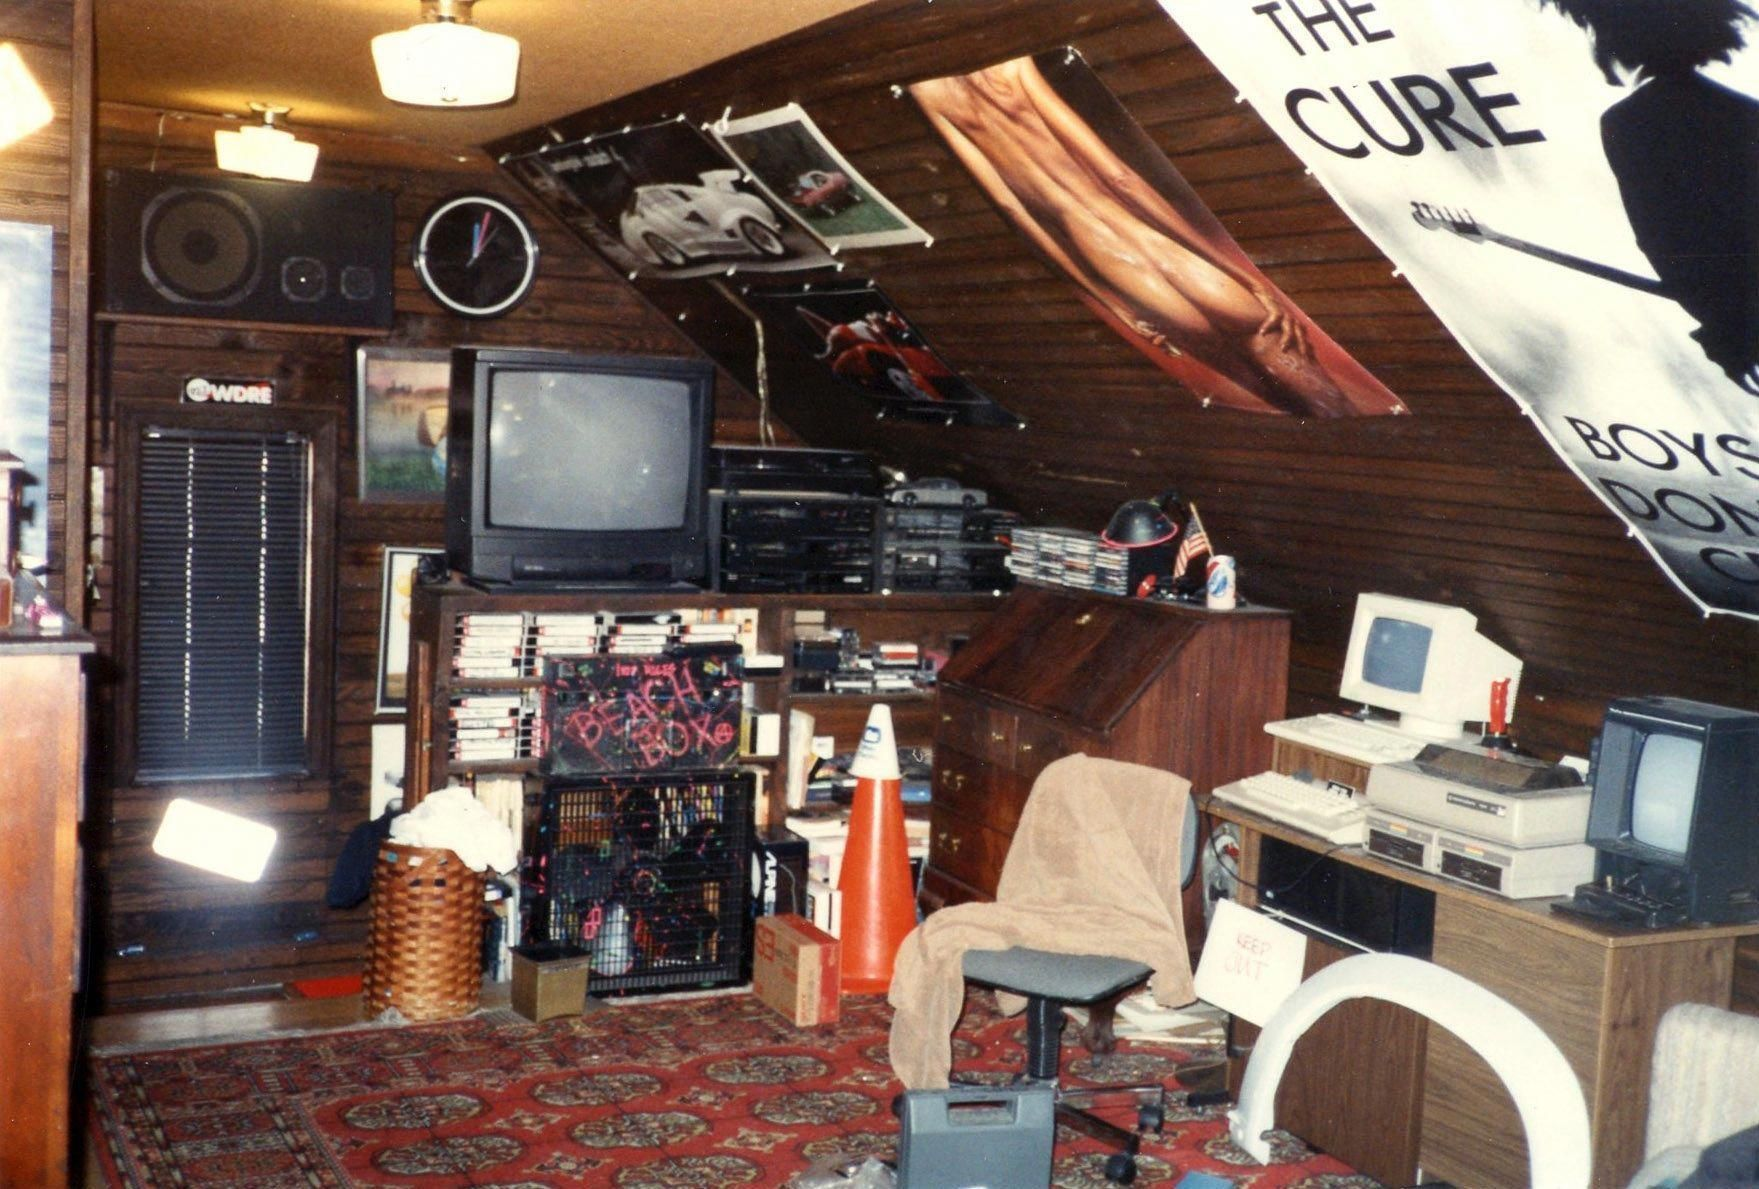 Image Result For 80s Nerd Room Aesthetic Retro Room Nerd Room Aesthetic Rooms